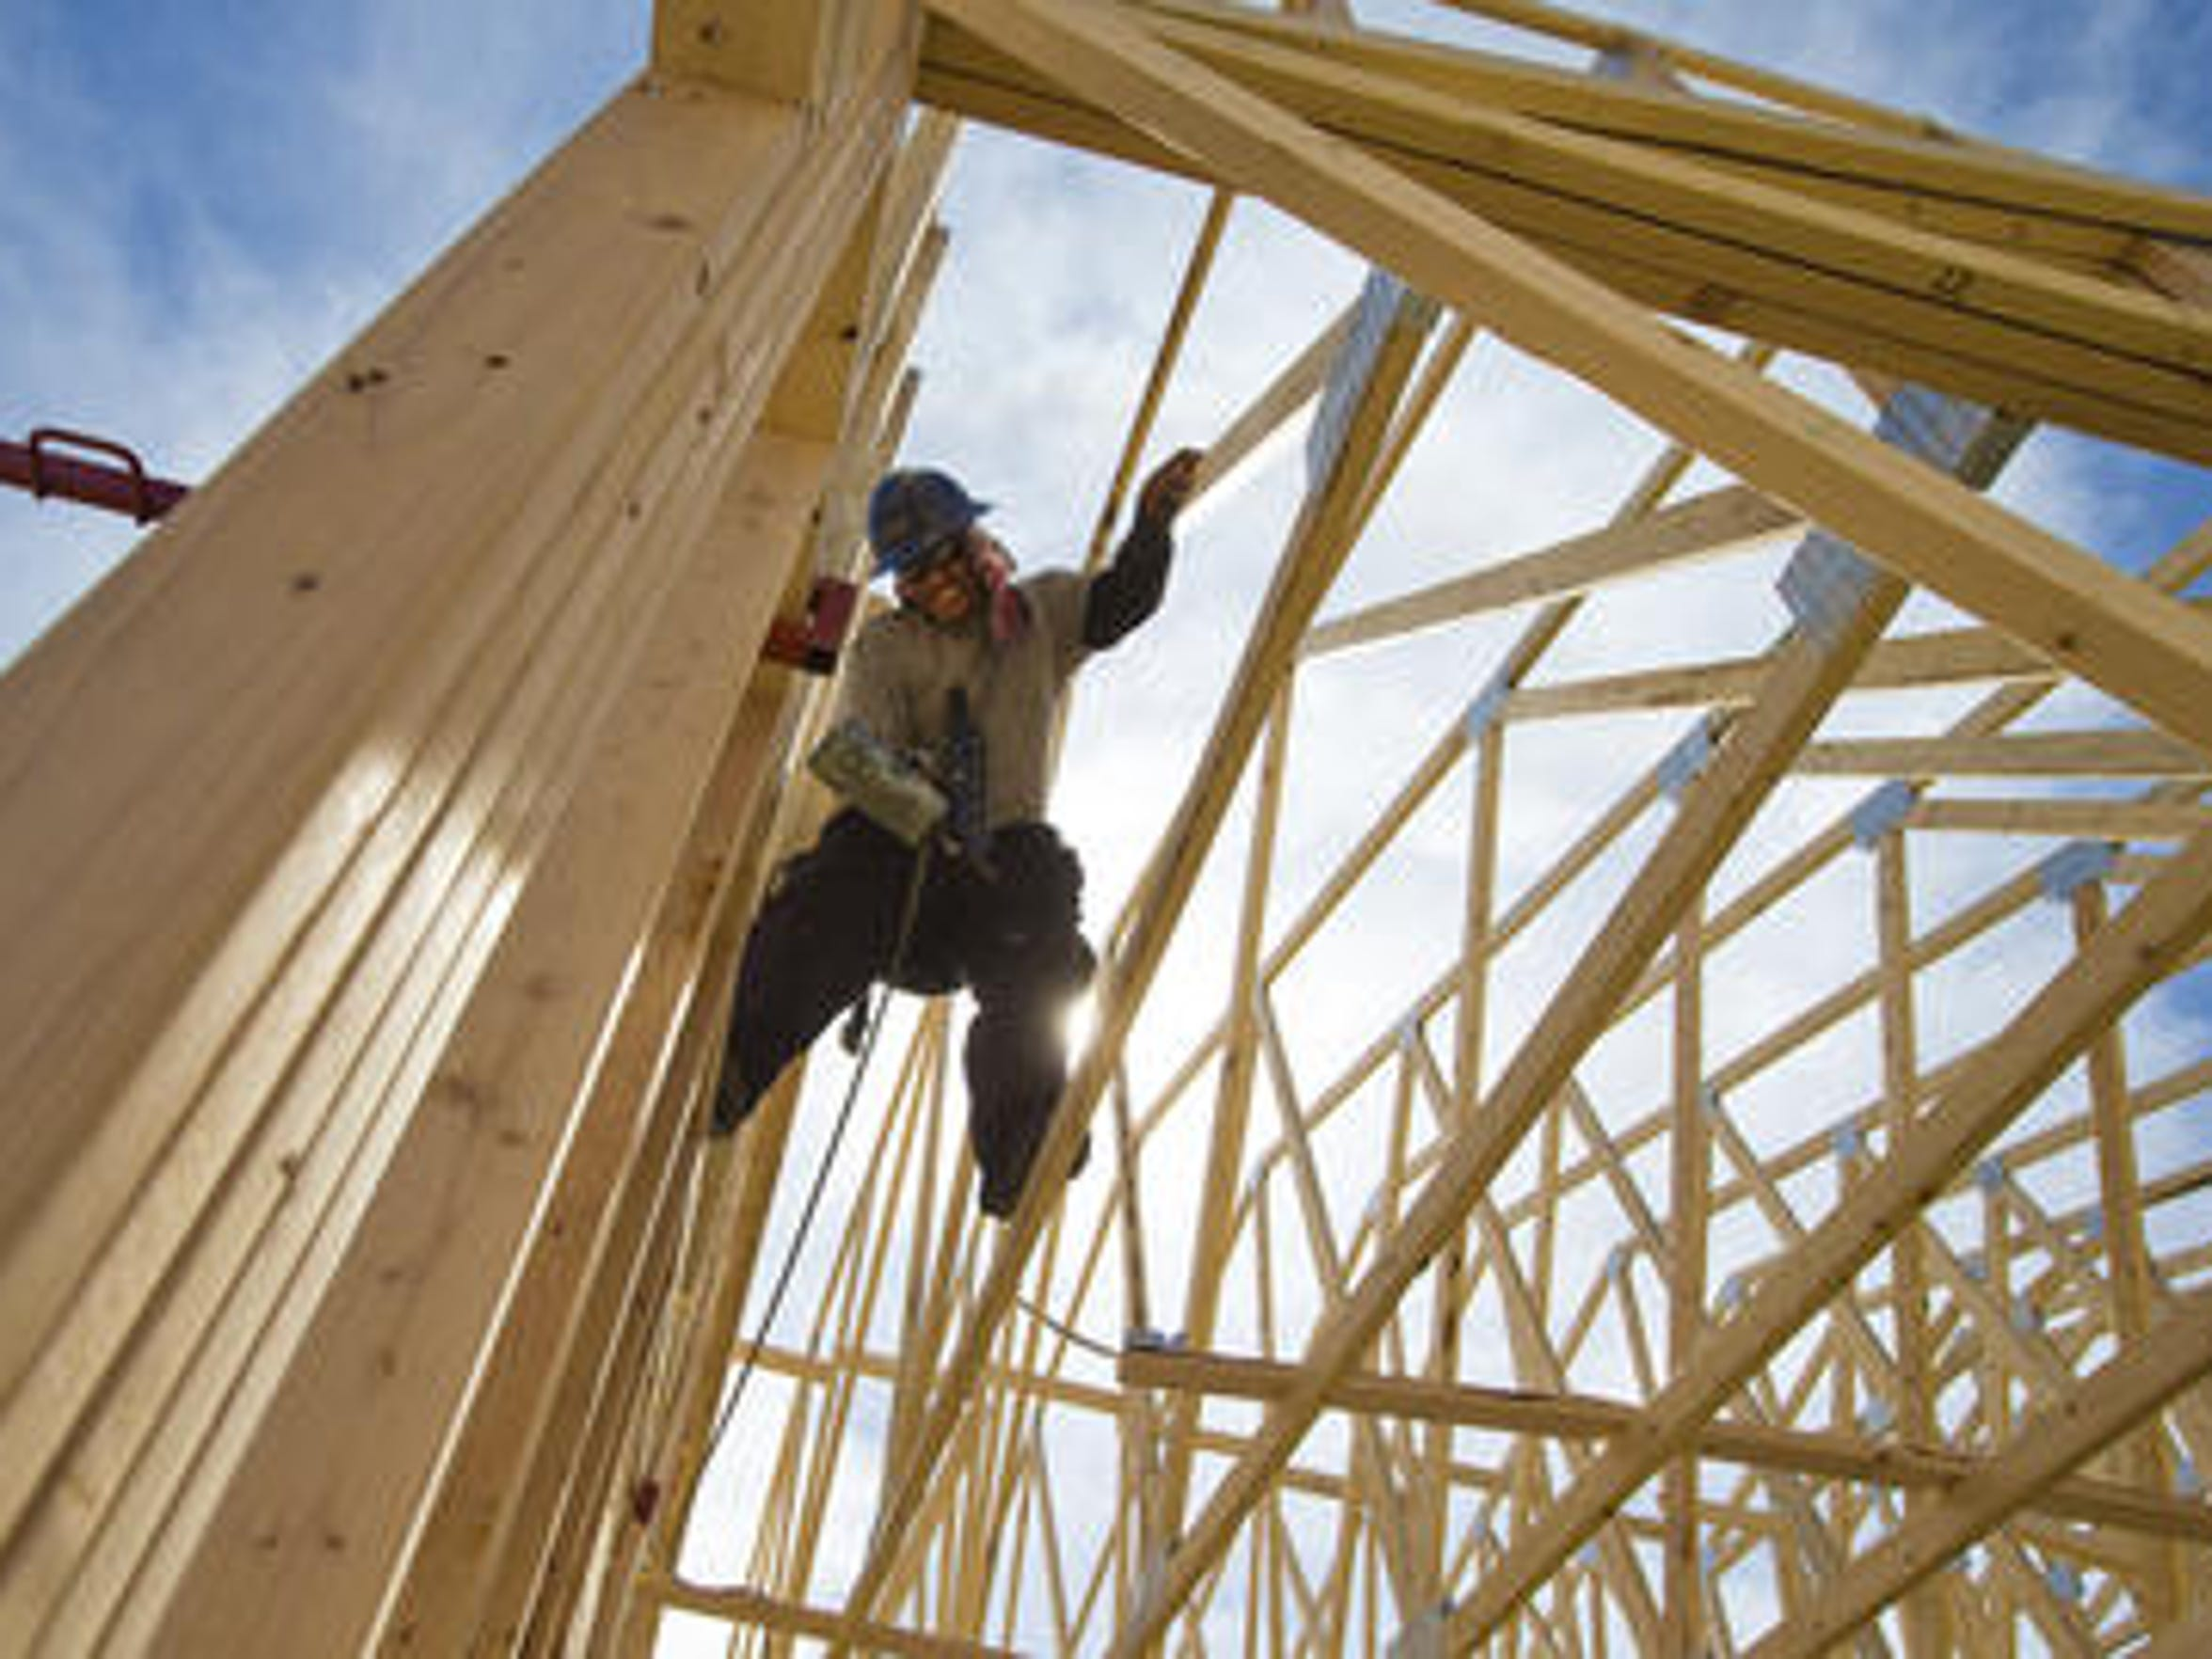 Many are leery of a speculator-led buying spree for new homes in metro Phoenix.